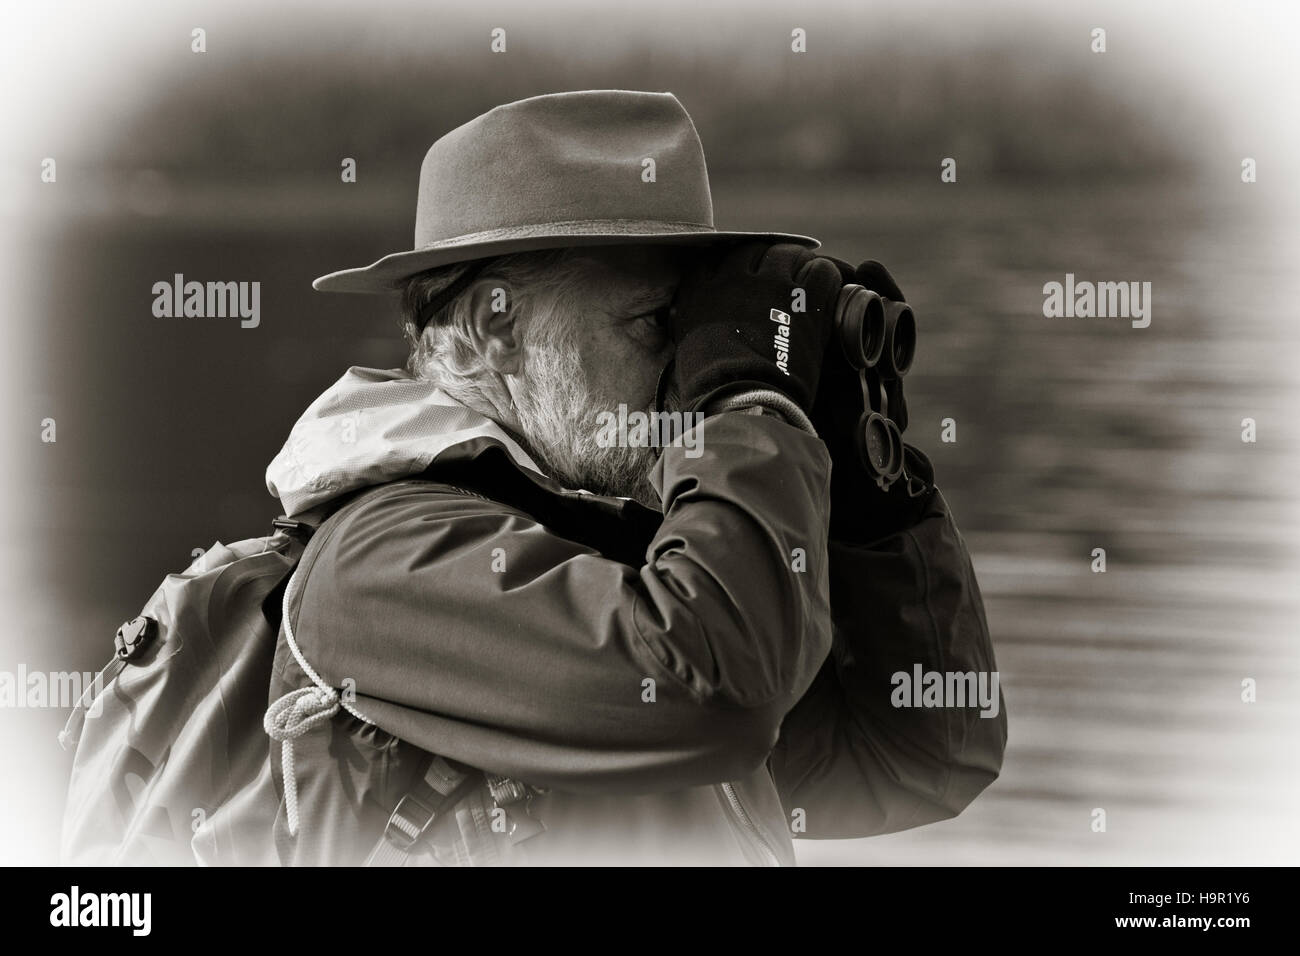 A nature tourist looking through his binoculars at birds wearing a hat - Stock Image